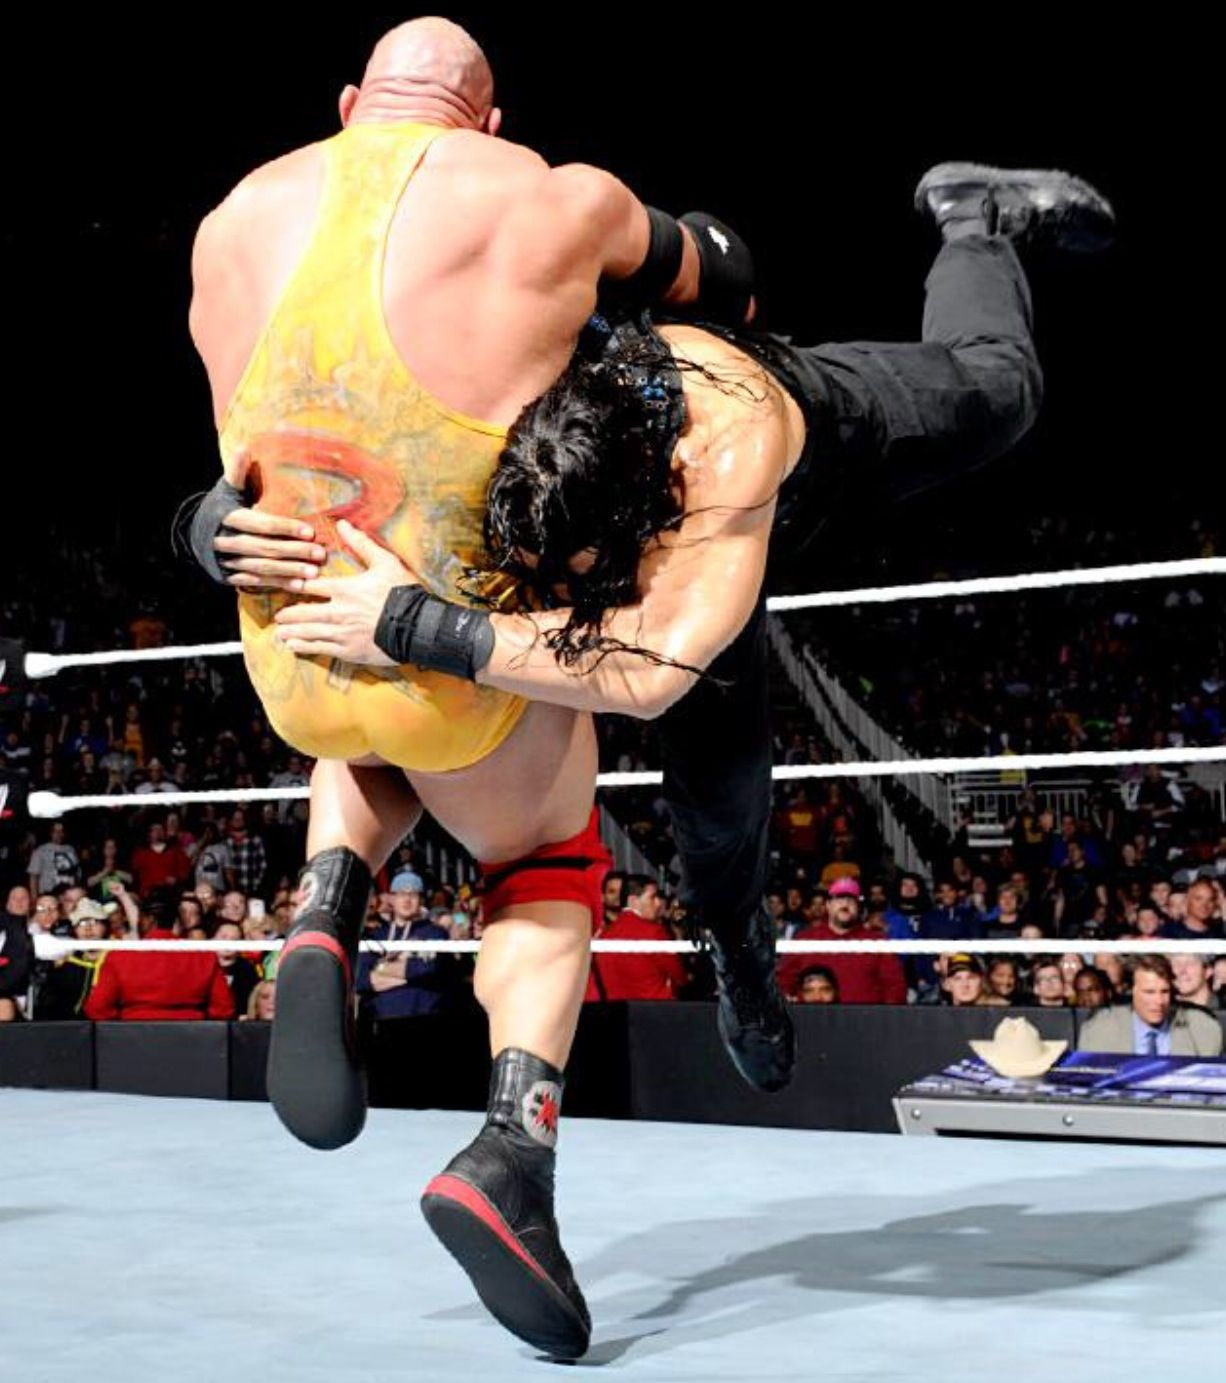 wwe roman reigns spear on ryback wwe pinterest wwe roman